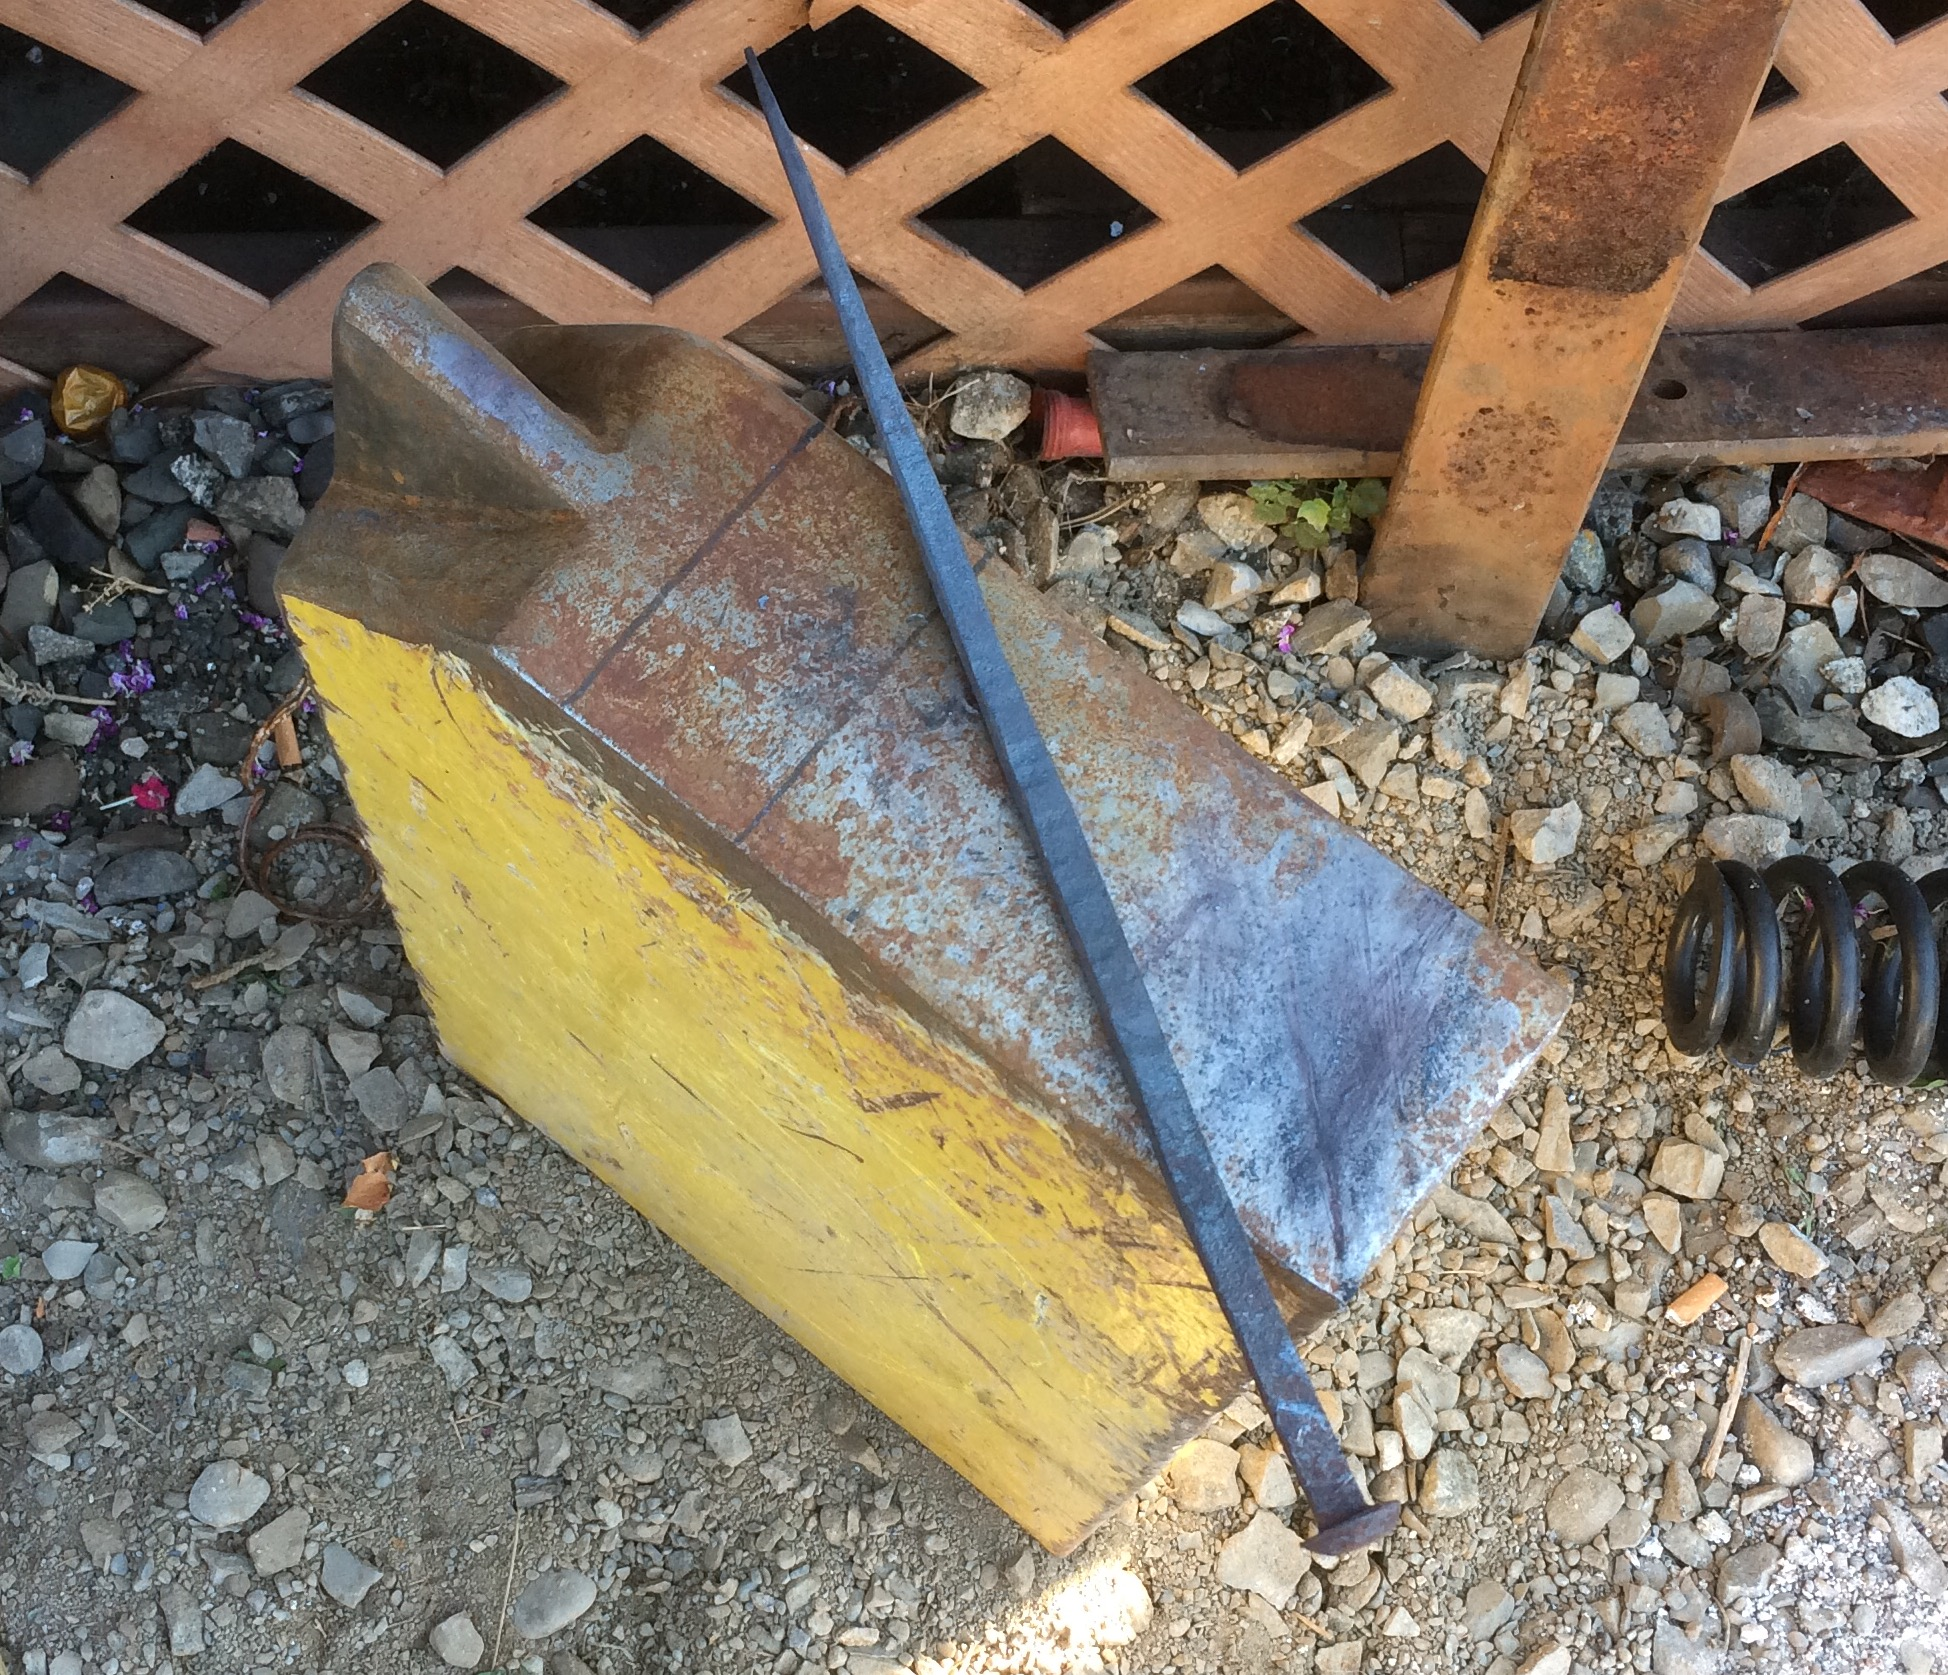 A collection of improvised anvils